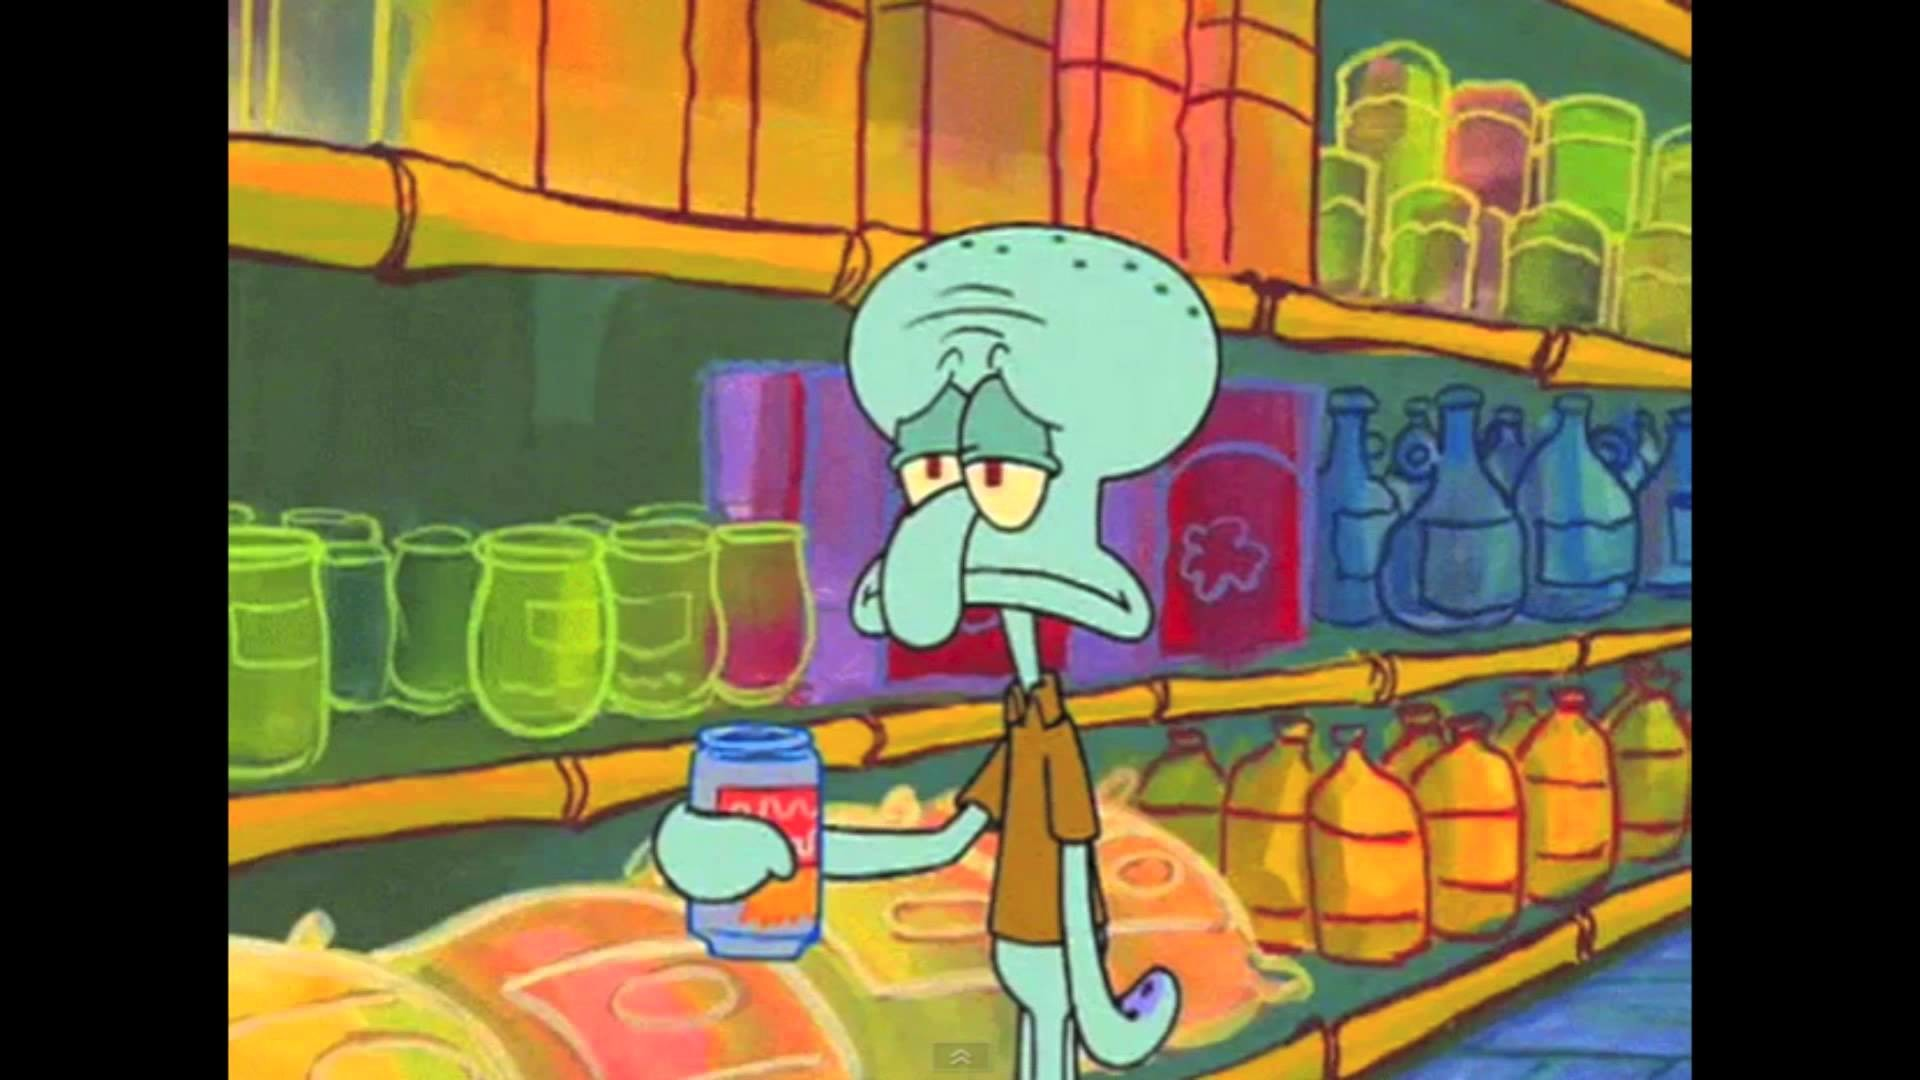 Res: 1920x1080, Squidward Mad World